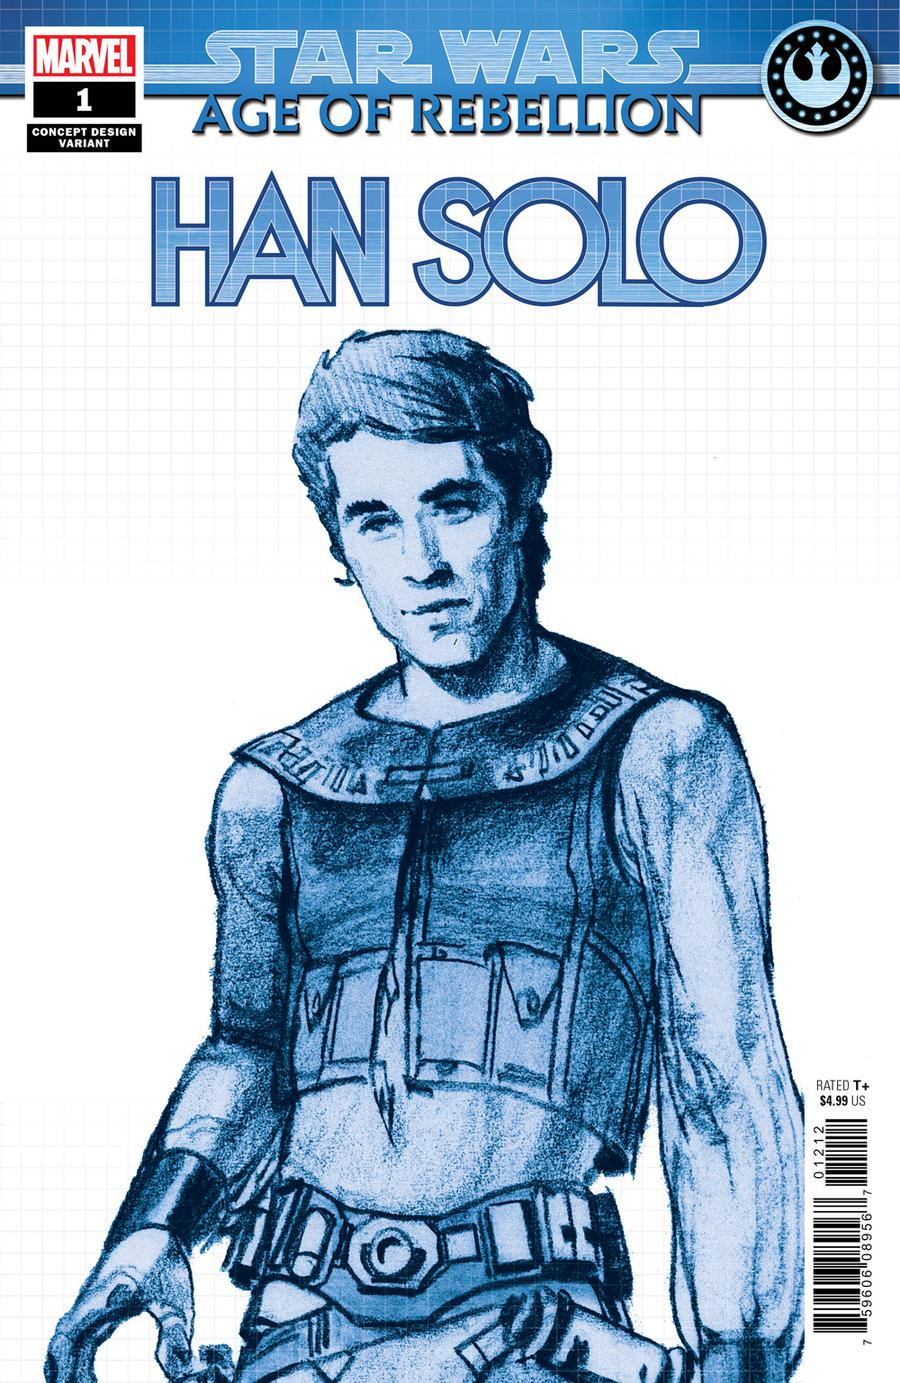 Star Wars Age Of Rebellion Han Solo #1 Cover B Variant Concept Design Cover